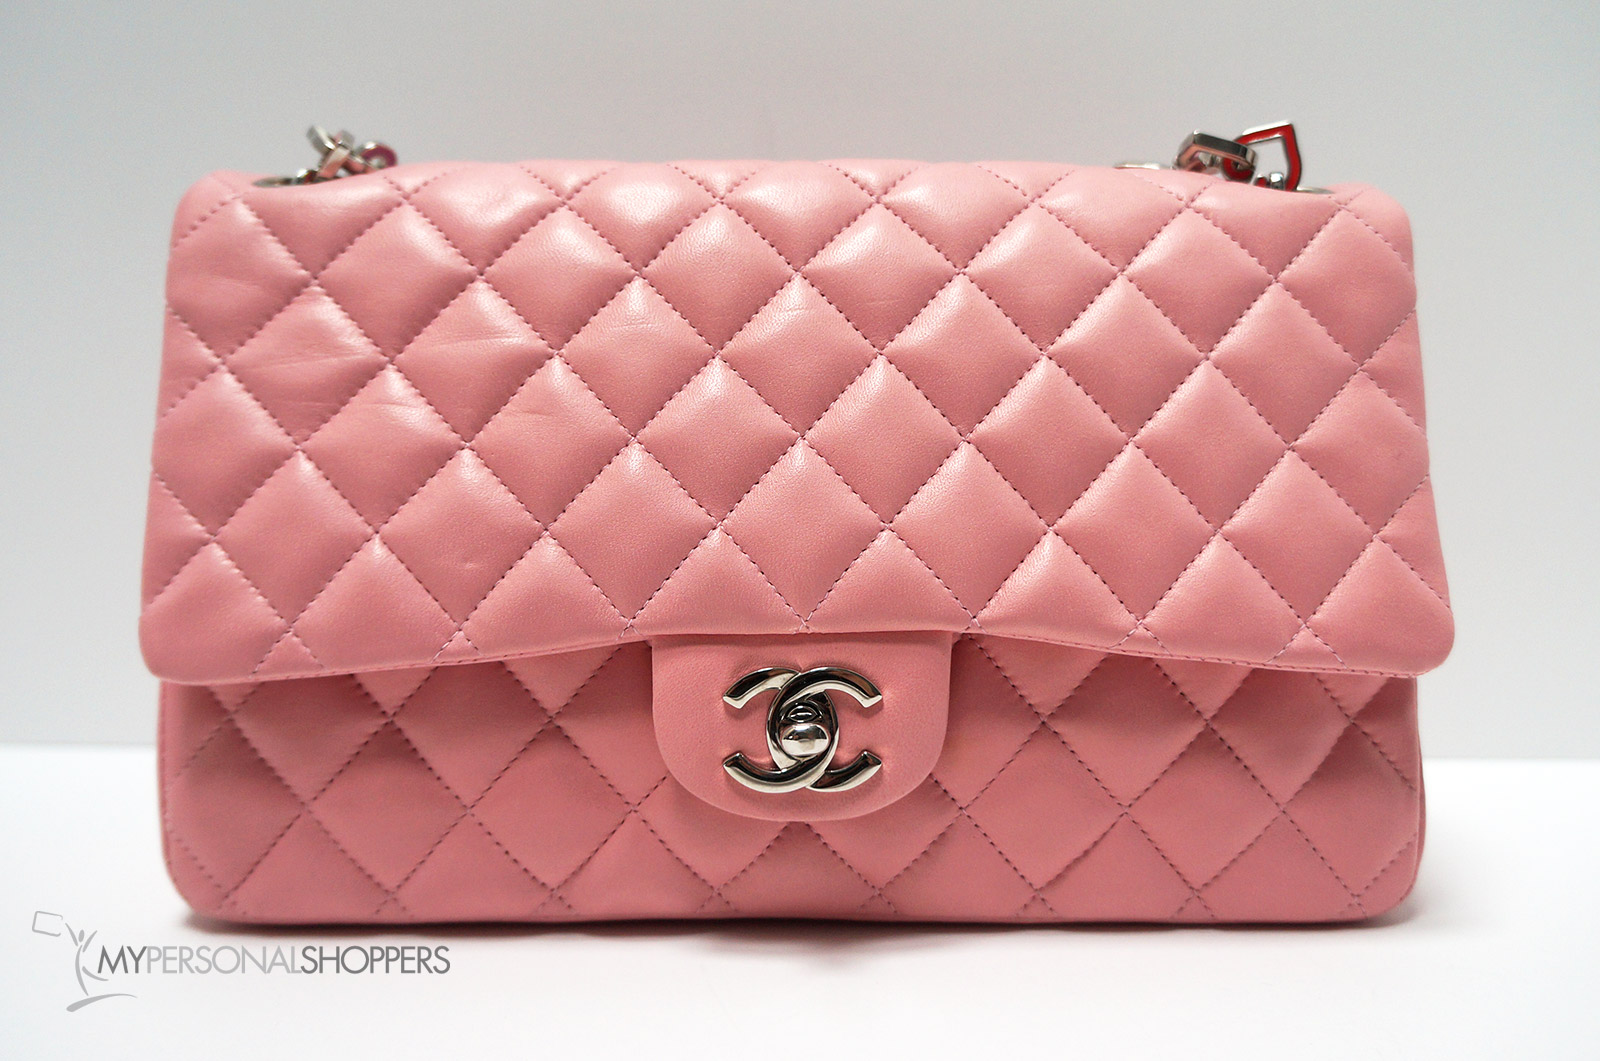 59dccacef774 Chanel Limited Edition Pink Lambskin Leather Valentine Heart Chain ...